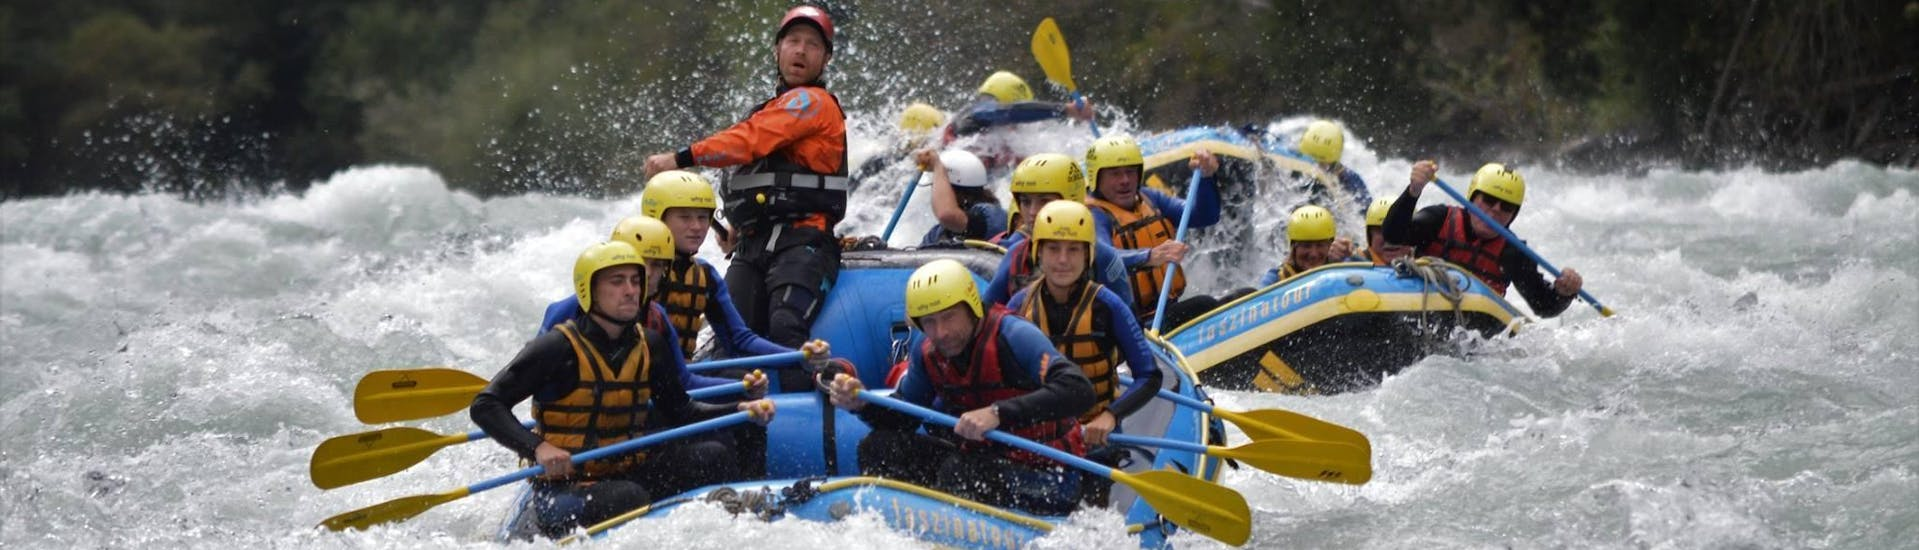 """During the Rafting """"Extreme Tour"""" on the Sanna, a certified rafting guide from WhyNot Adventures is commanding his rafting crew whilst tackling very challenging river section."""